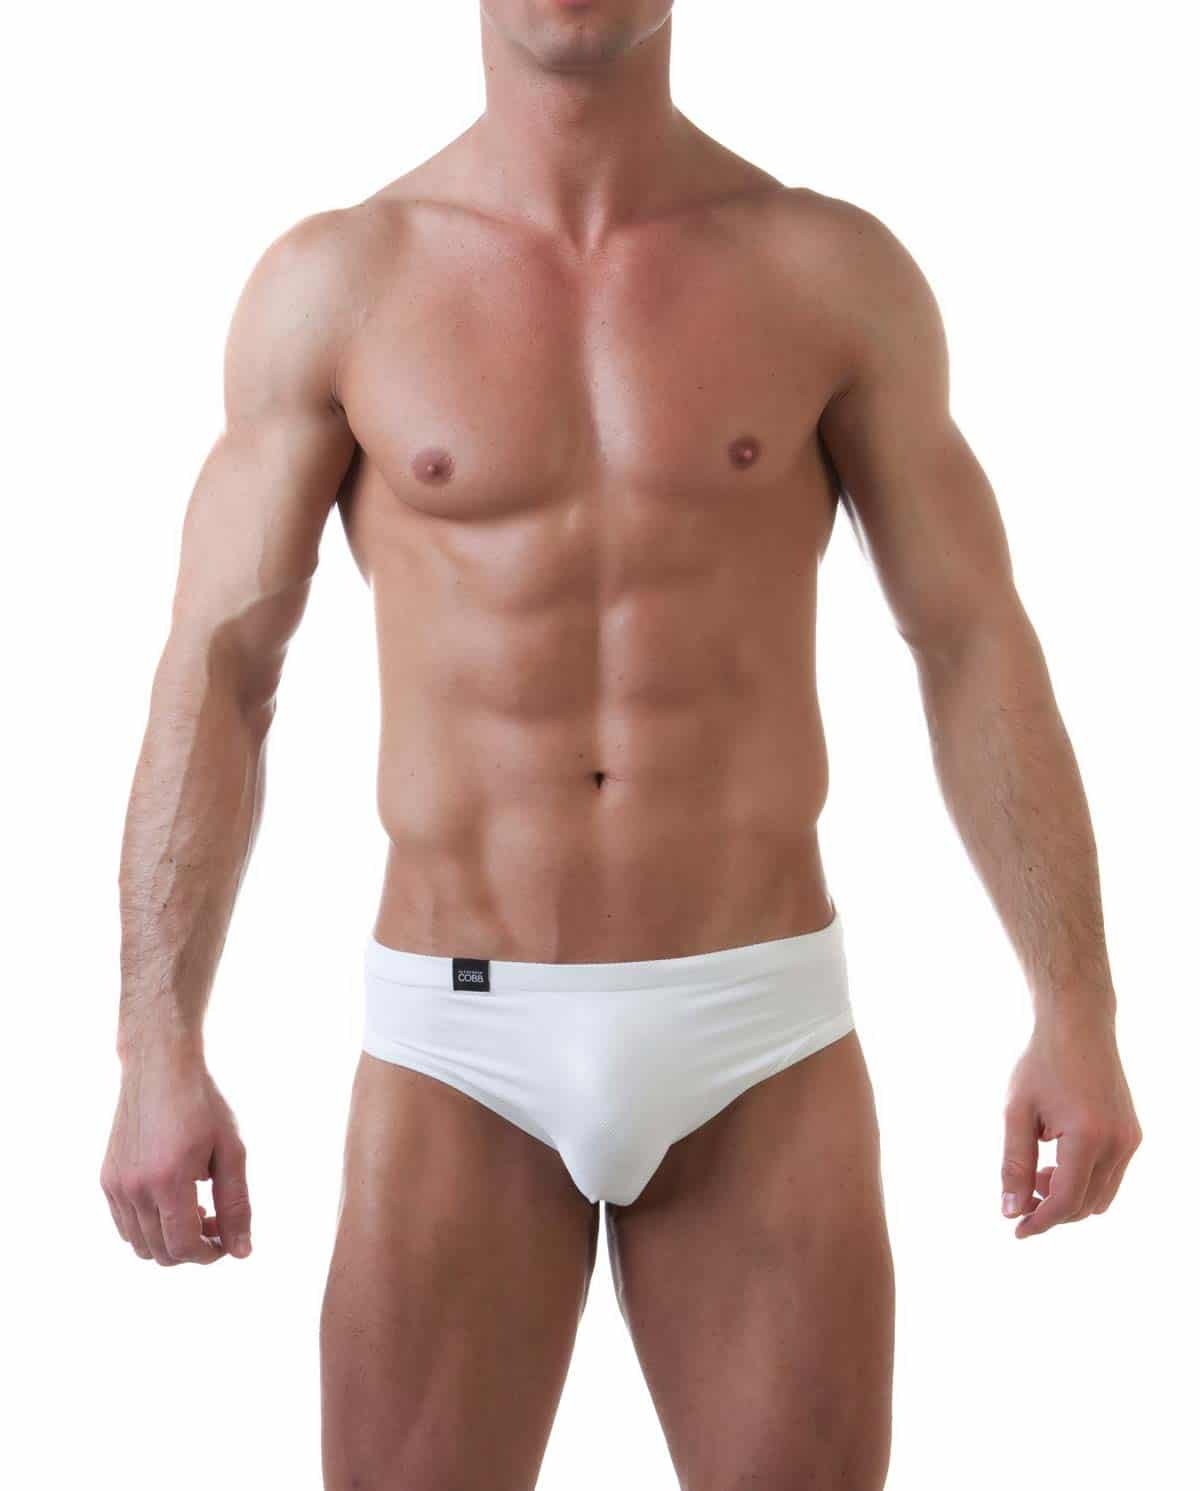 Male underwear model wearing Alexander Cobb Précieux White Men's Brief - Front View